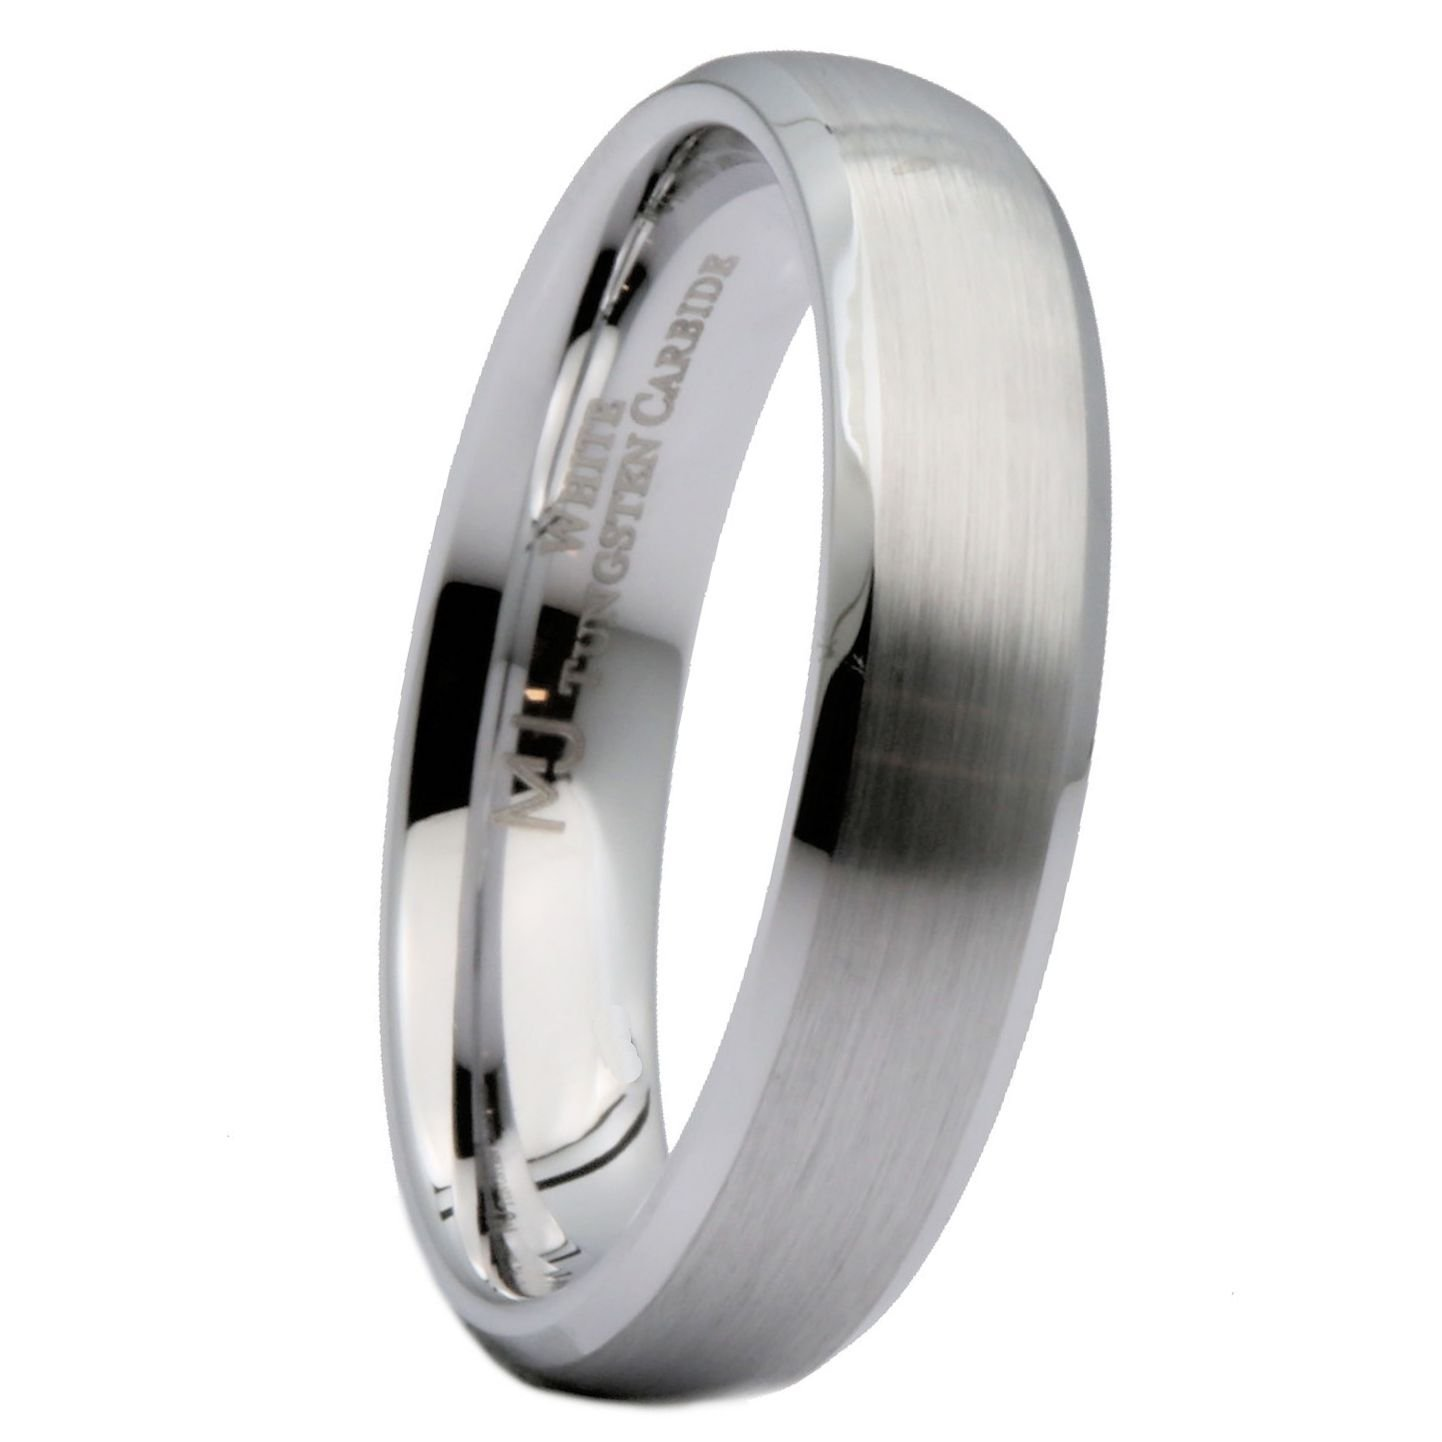 MJ Metals Jewelry Custom Engraving 5mm White Tungsten Carbide Brushed Polished Edge Ring Size 8